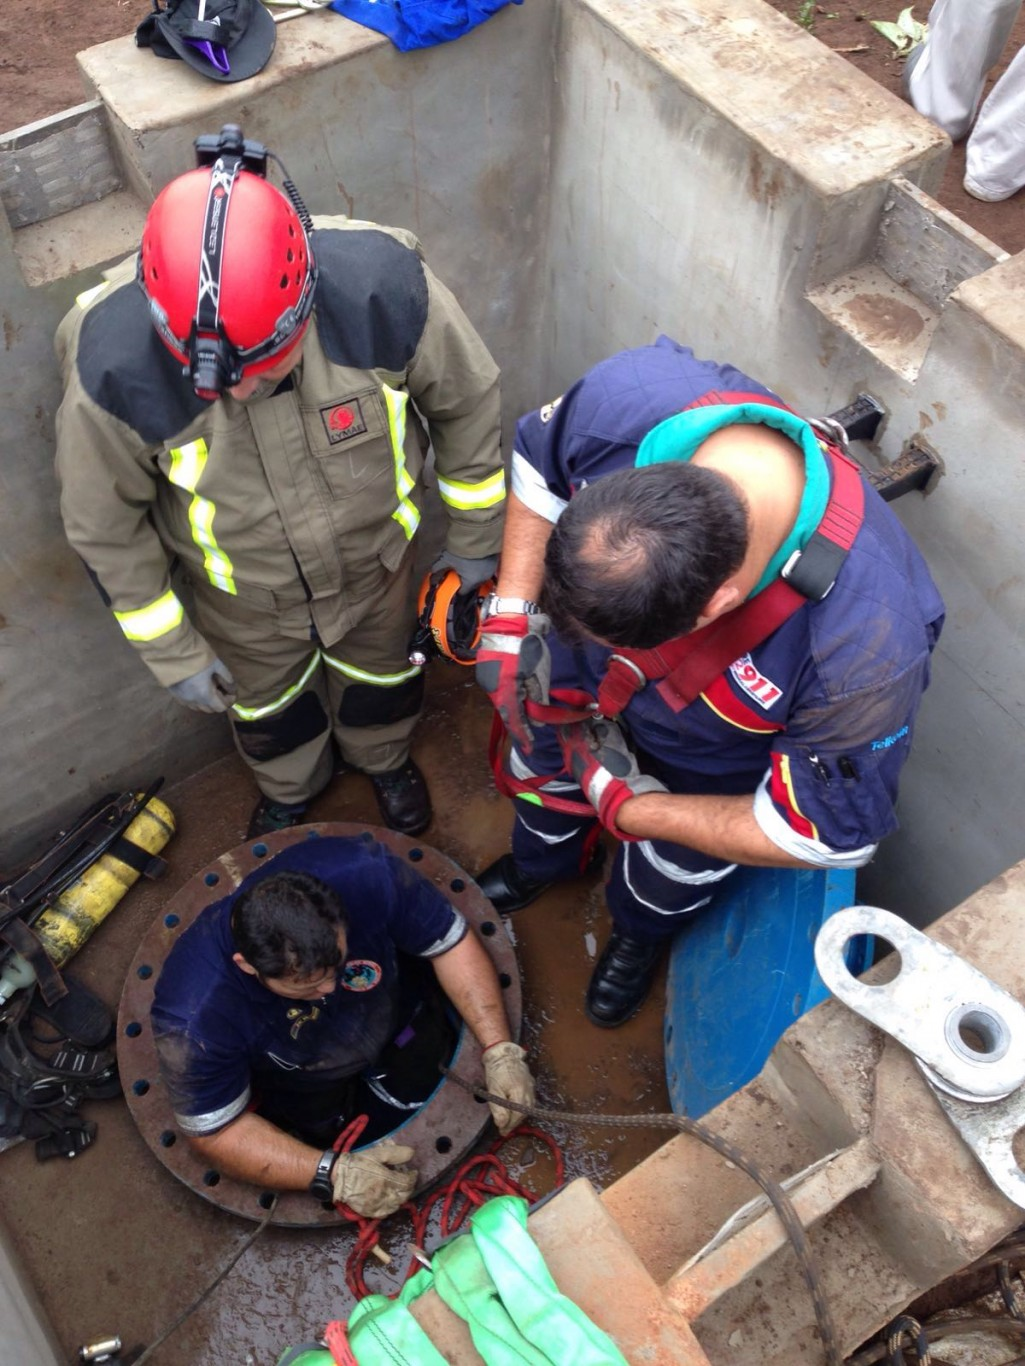 Photos from Eshowe industrial site rescue